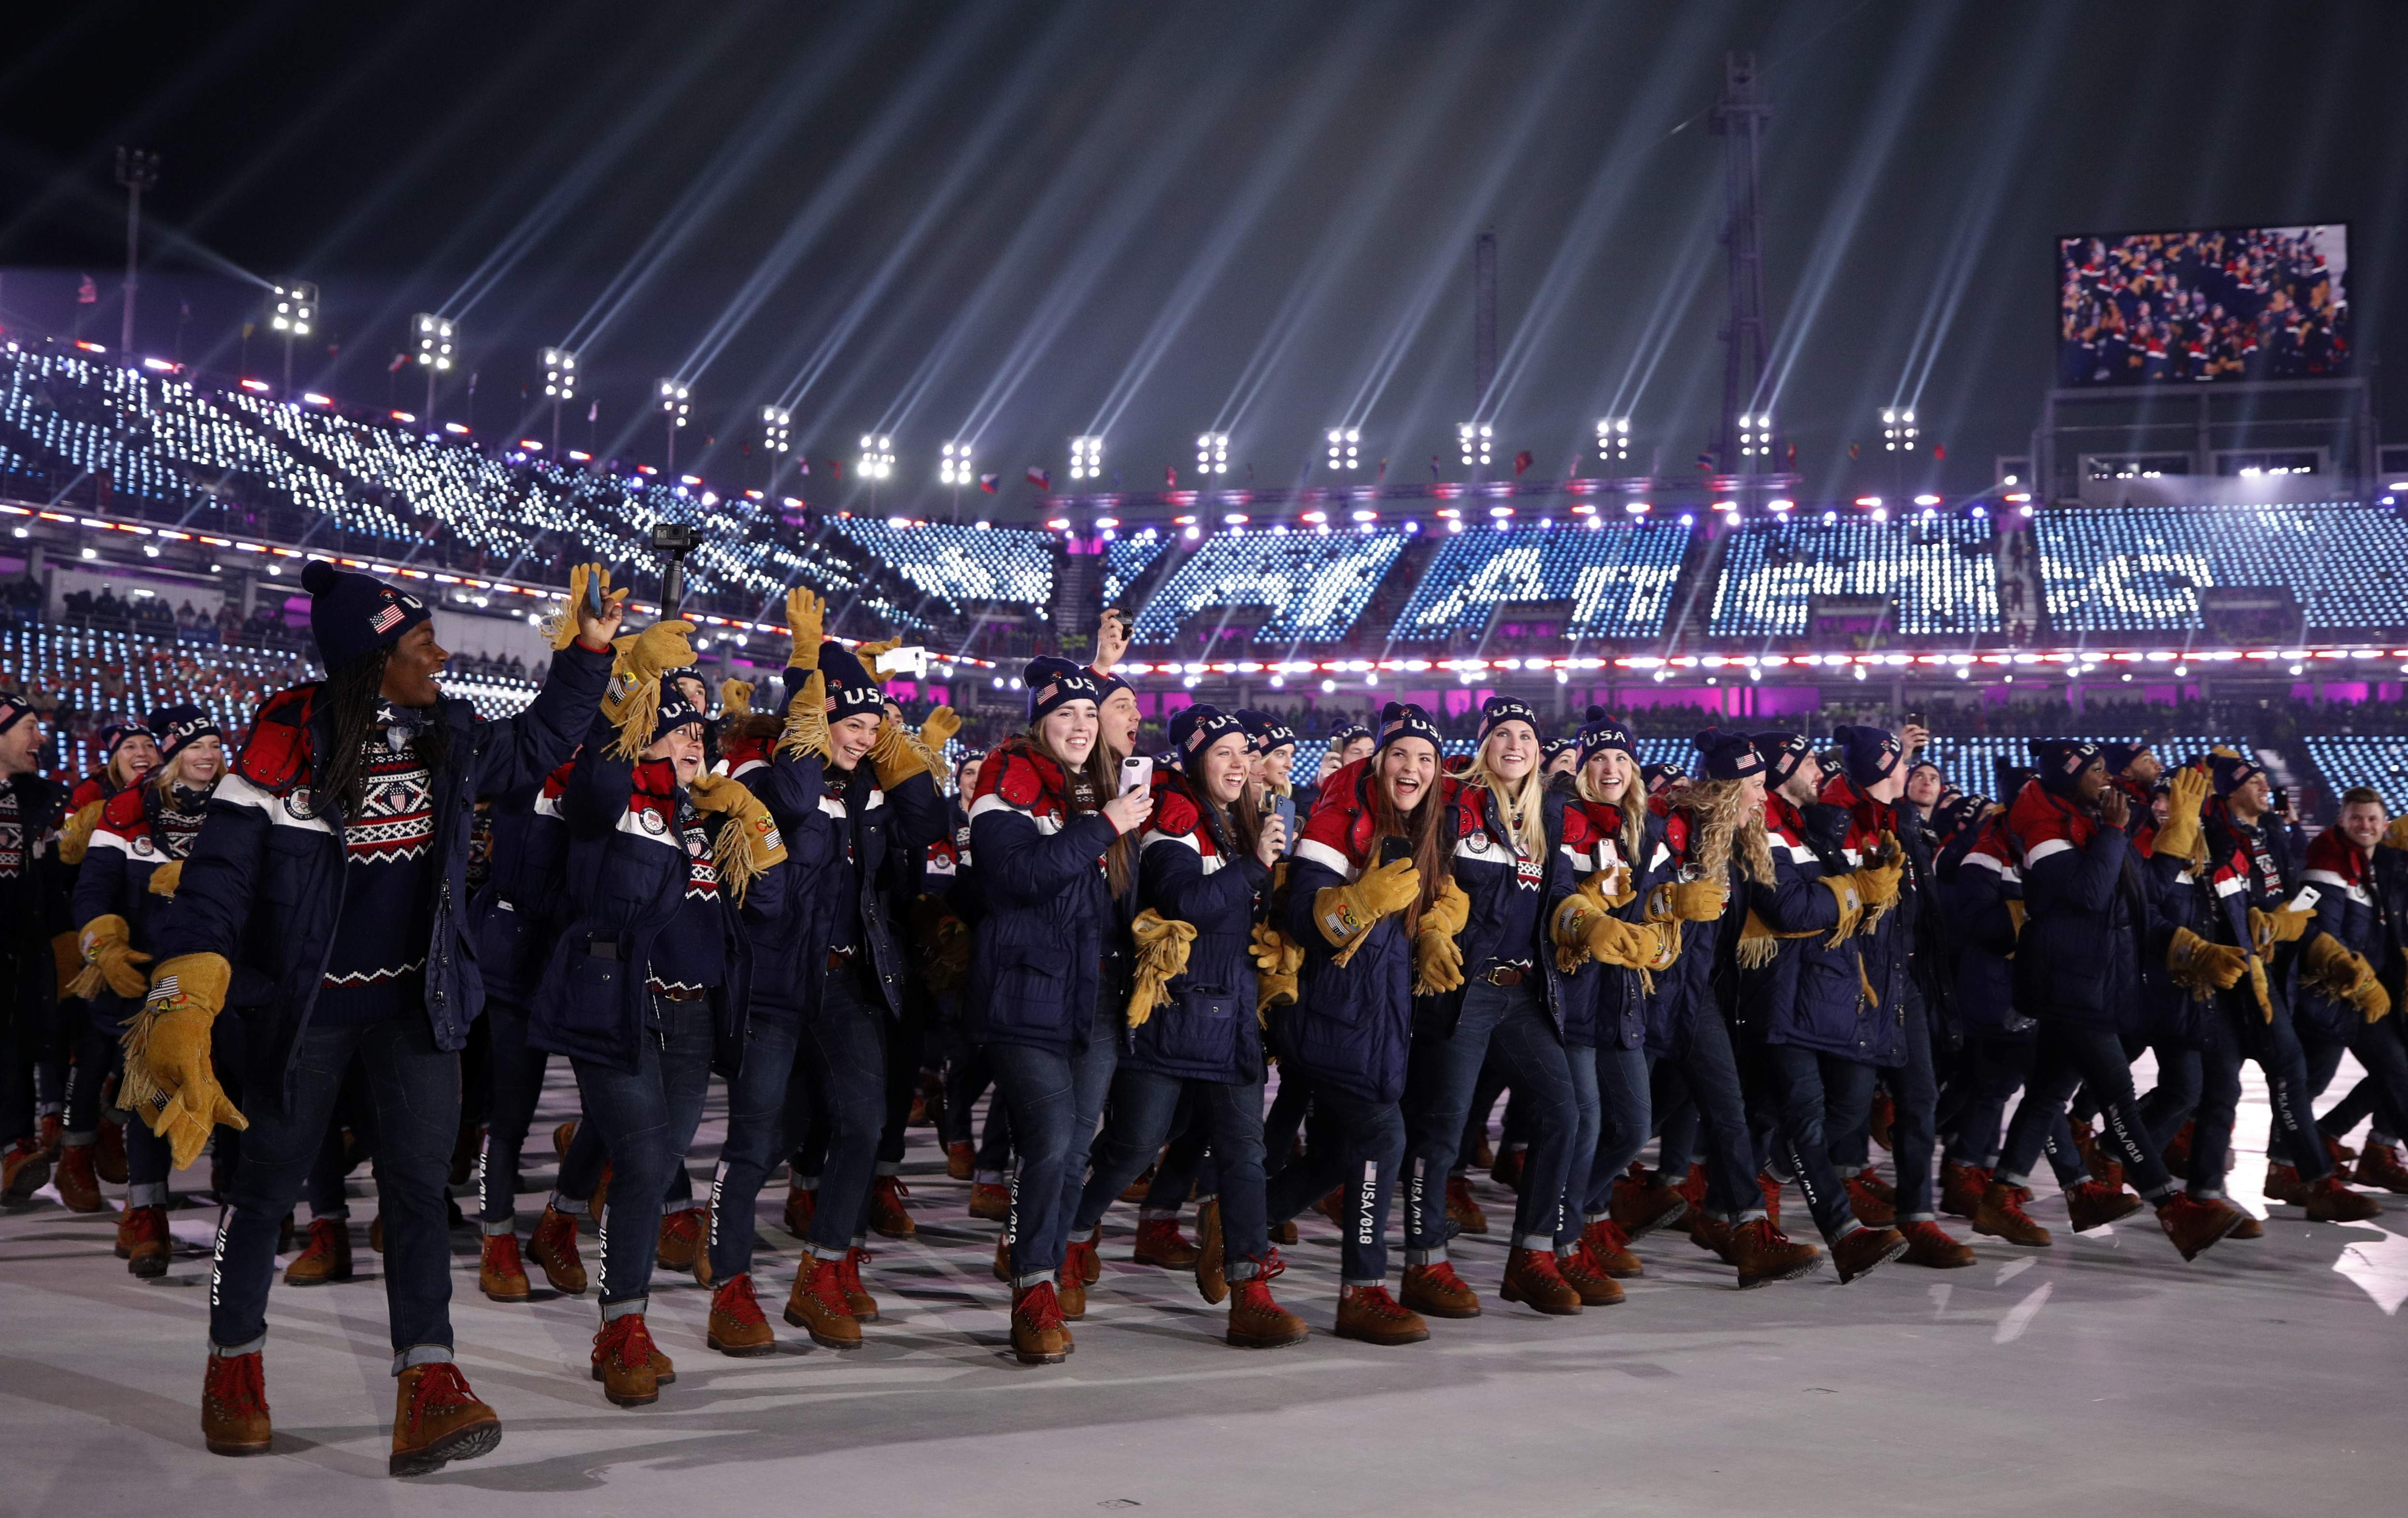 Members of the United States team walk during the opening ceremony of the 2018 Winter Olympics in Pyeongchang, South Korea, Friday, Feb. 9, 2018. (AP Photo/Jae C. Hong)